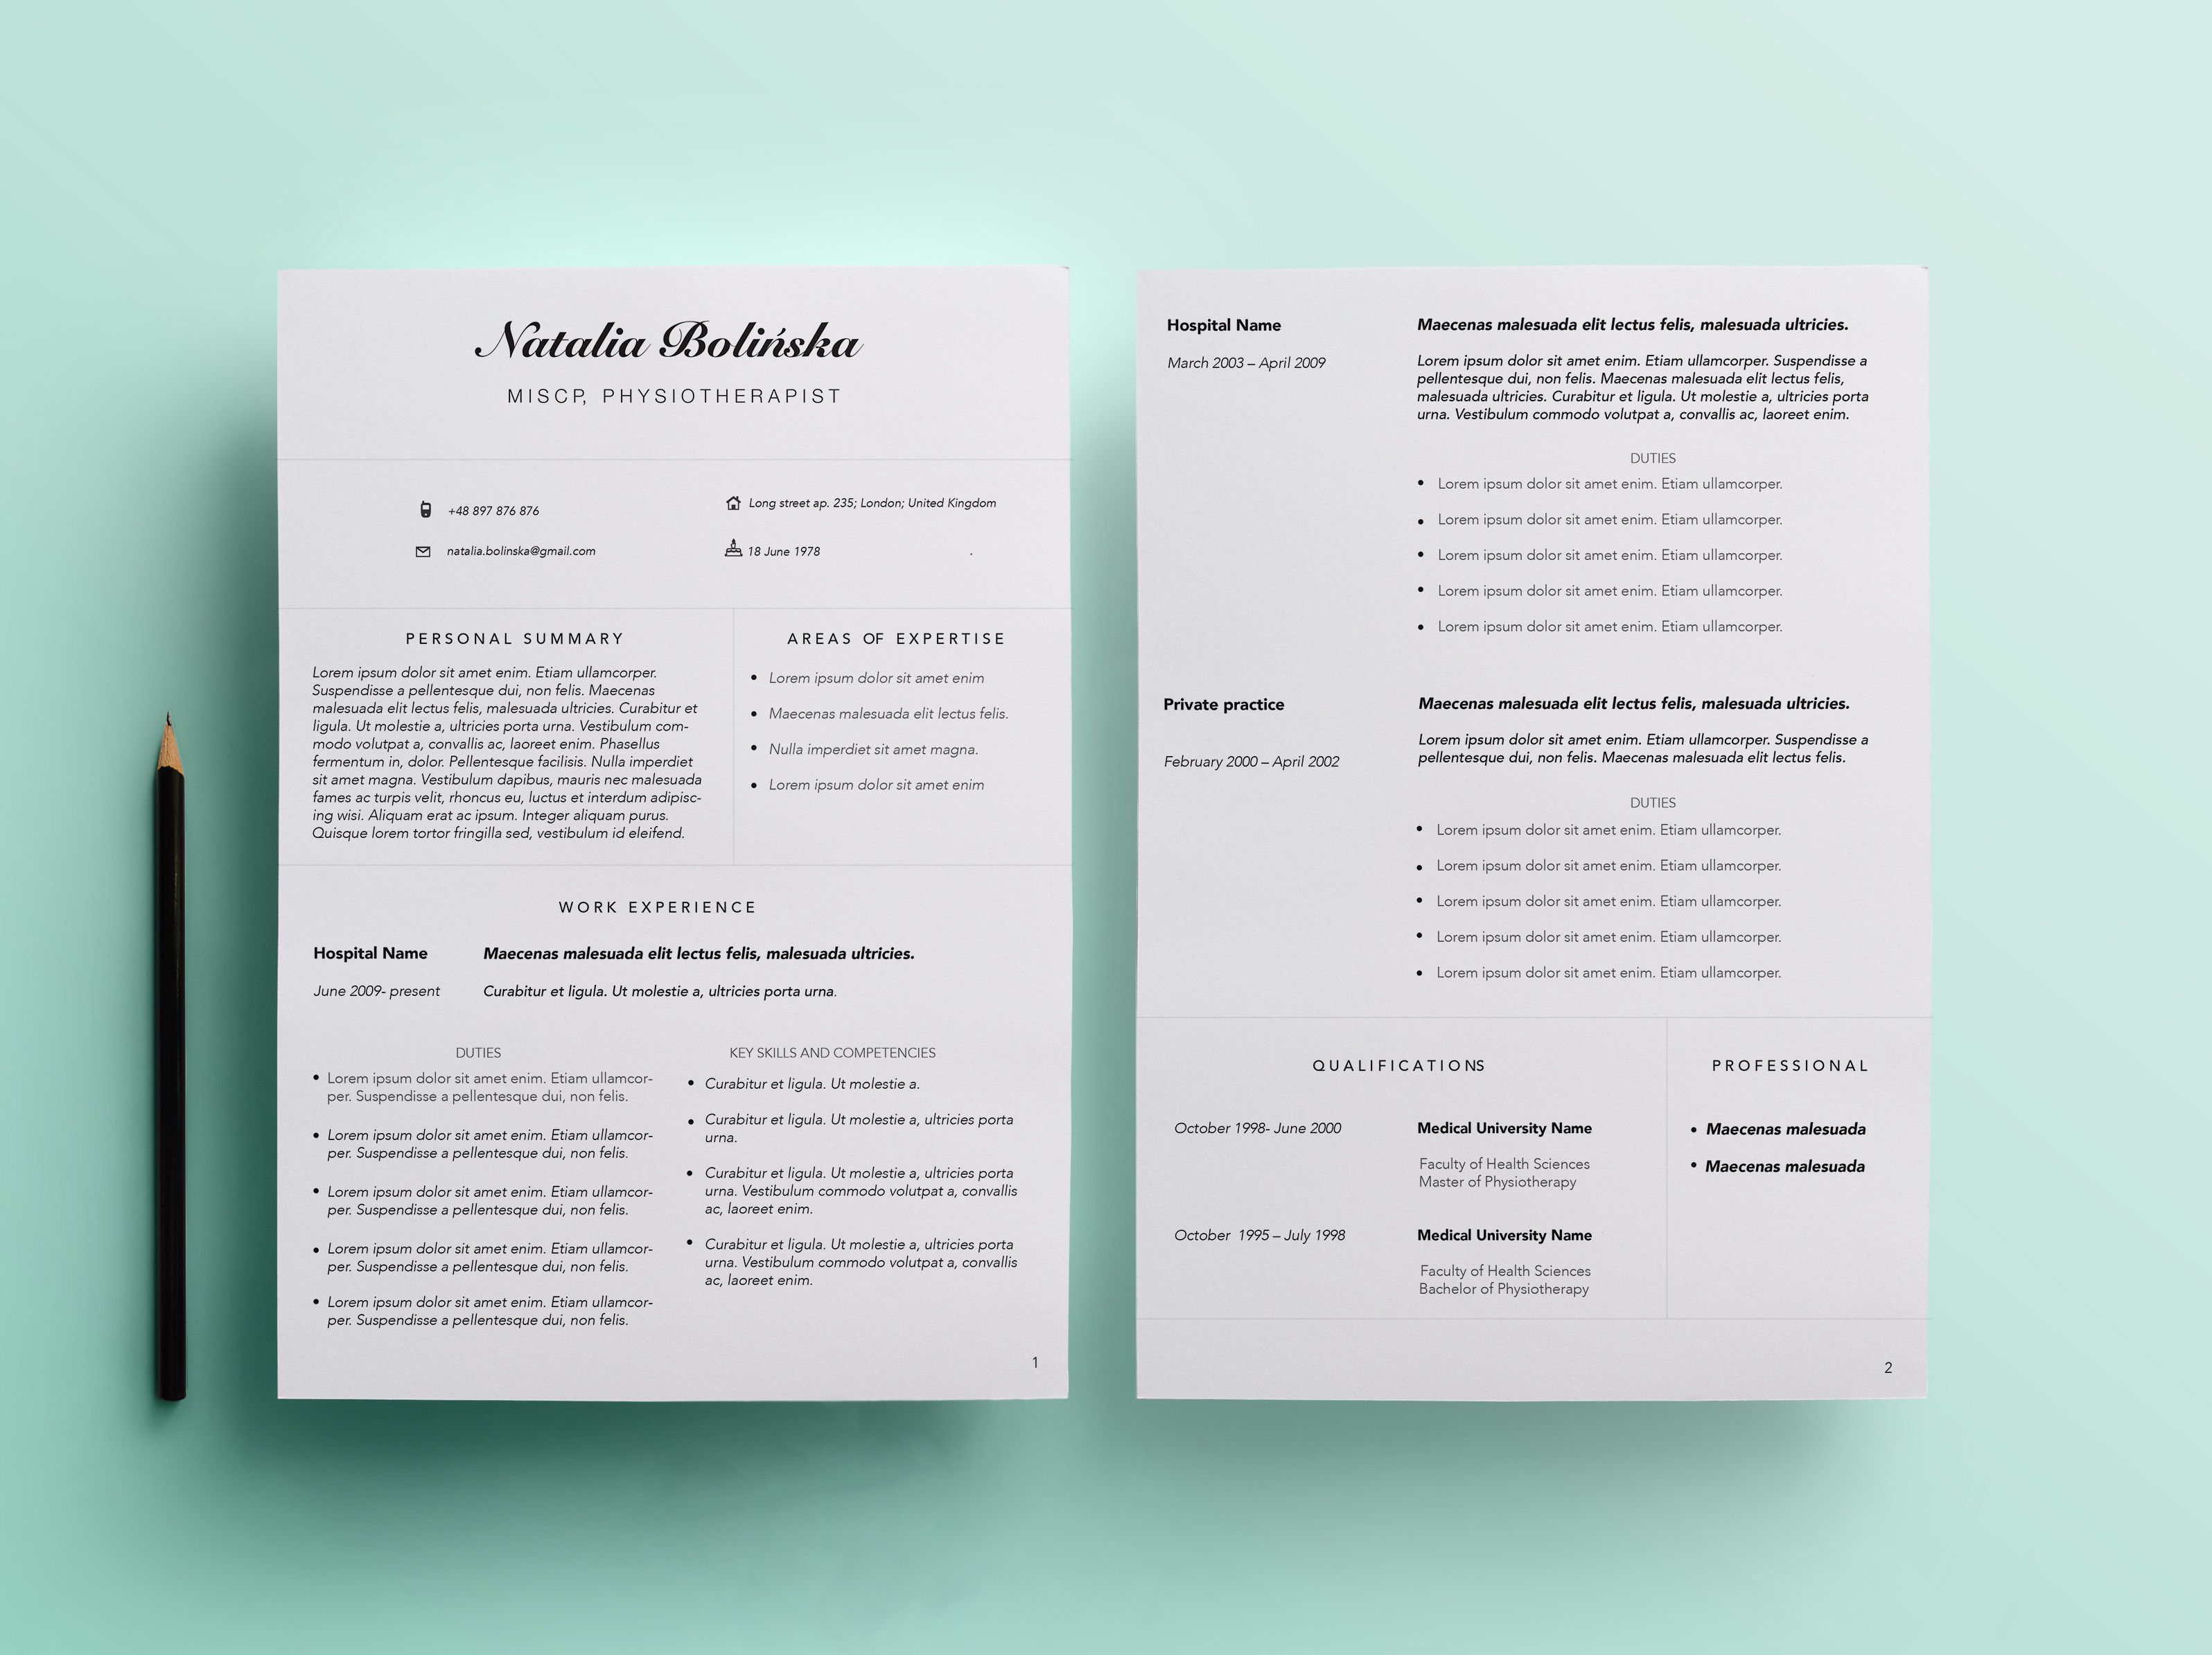 beautiful resume for physiotherapist  looking for similar one  find the shop cv design on etsy